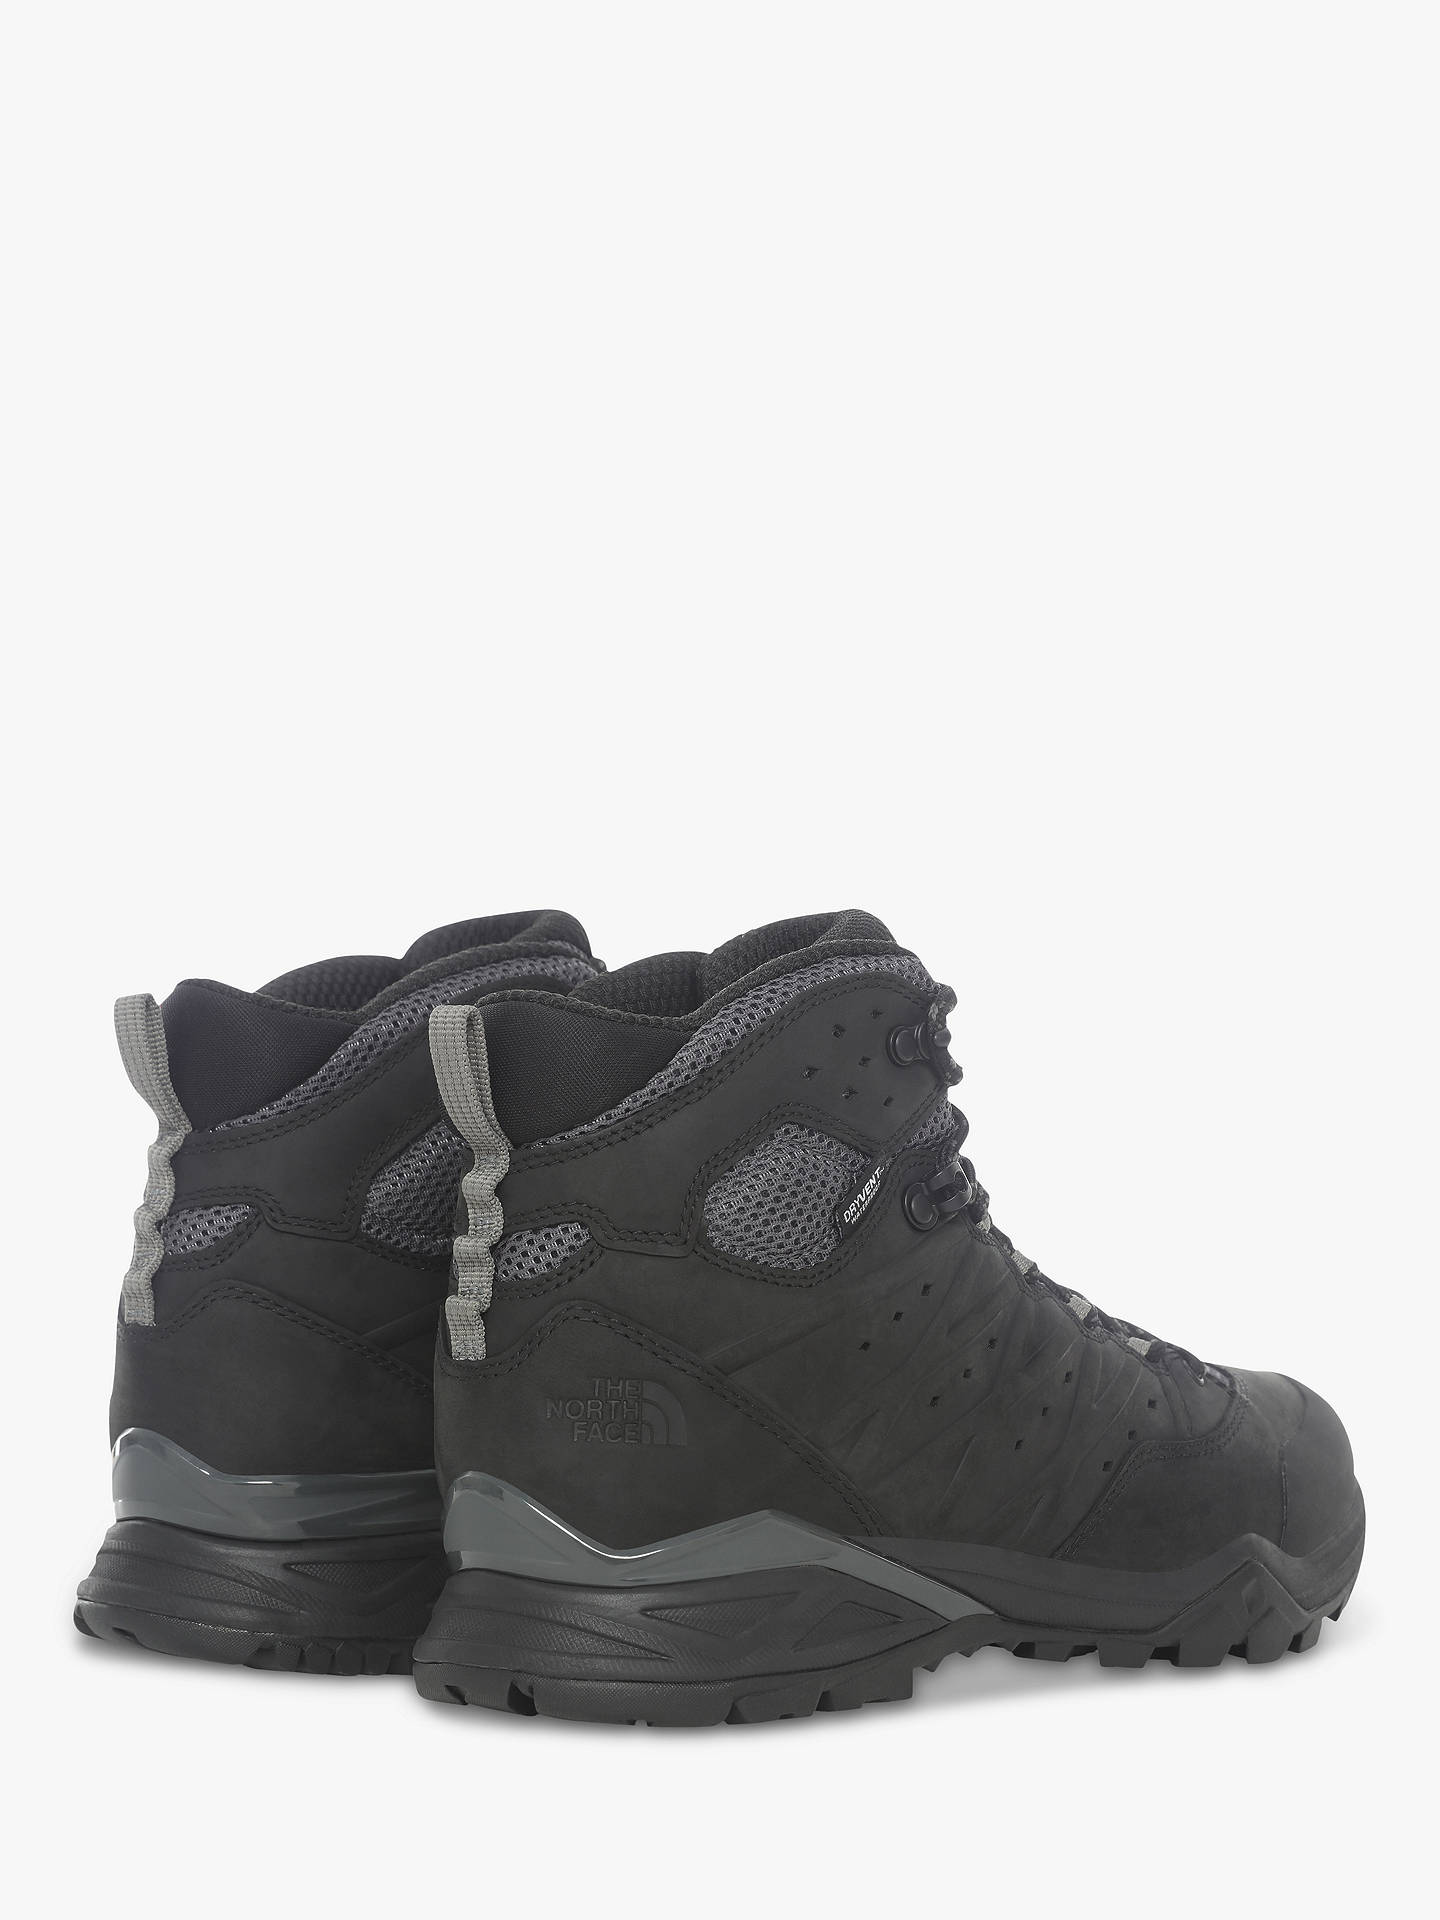 Buy The North Face Hedgehog Hike II Mid Men's Waterproof Gore-Tex Hiking Shoes, TNF Black/Graphite Grey, 8 Online at johnlewis.com